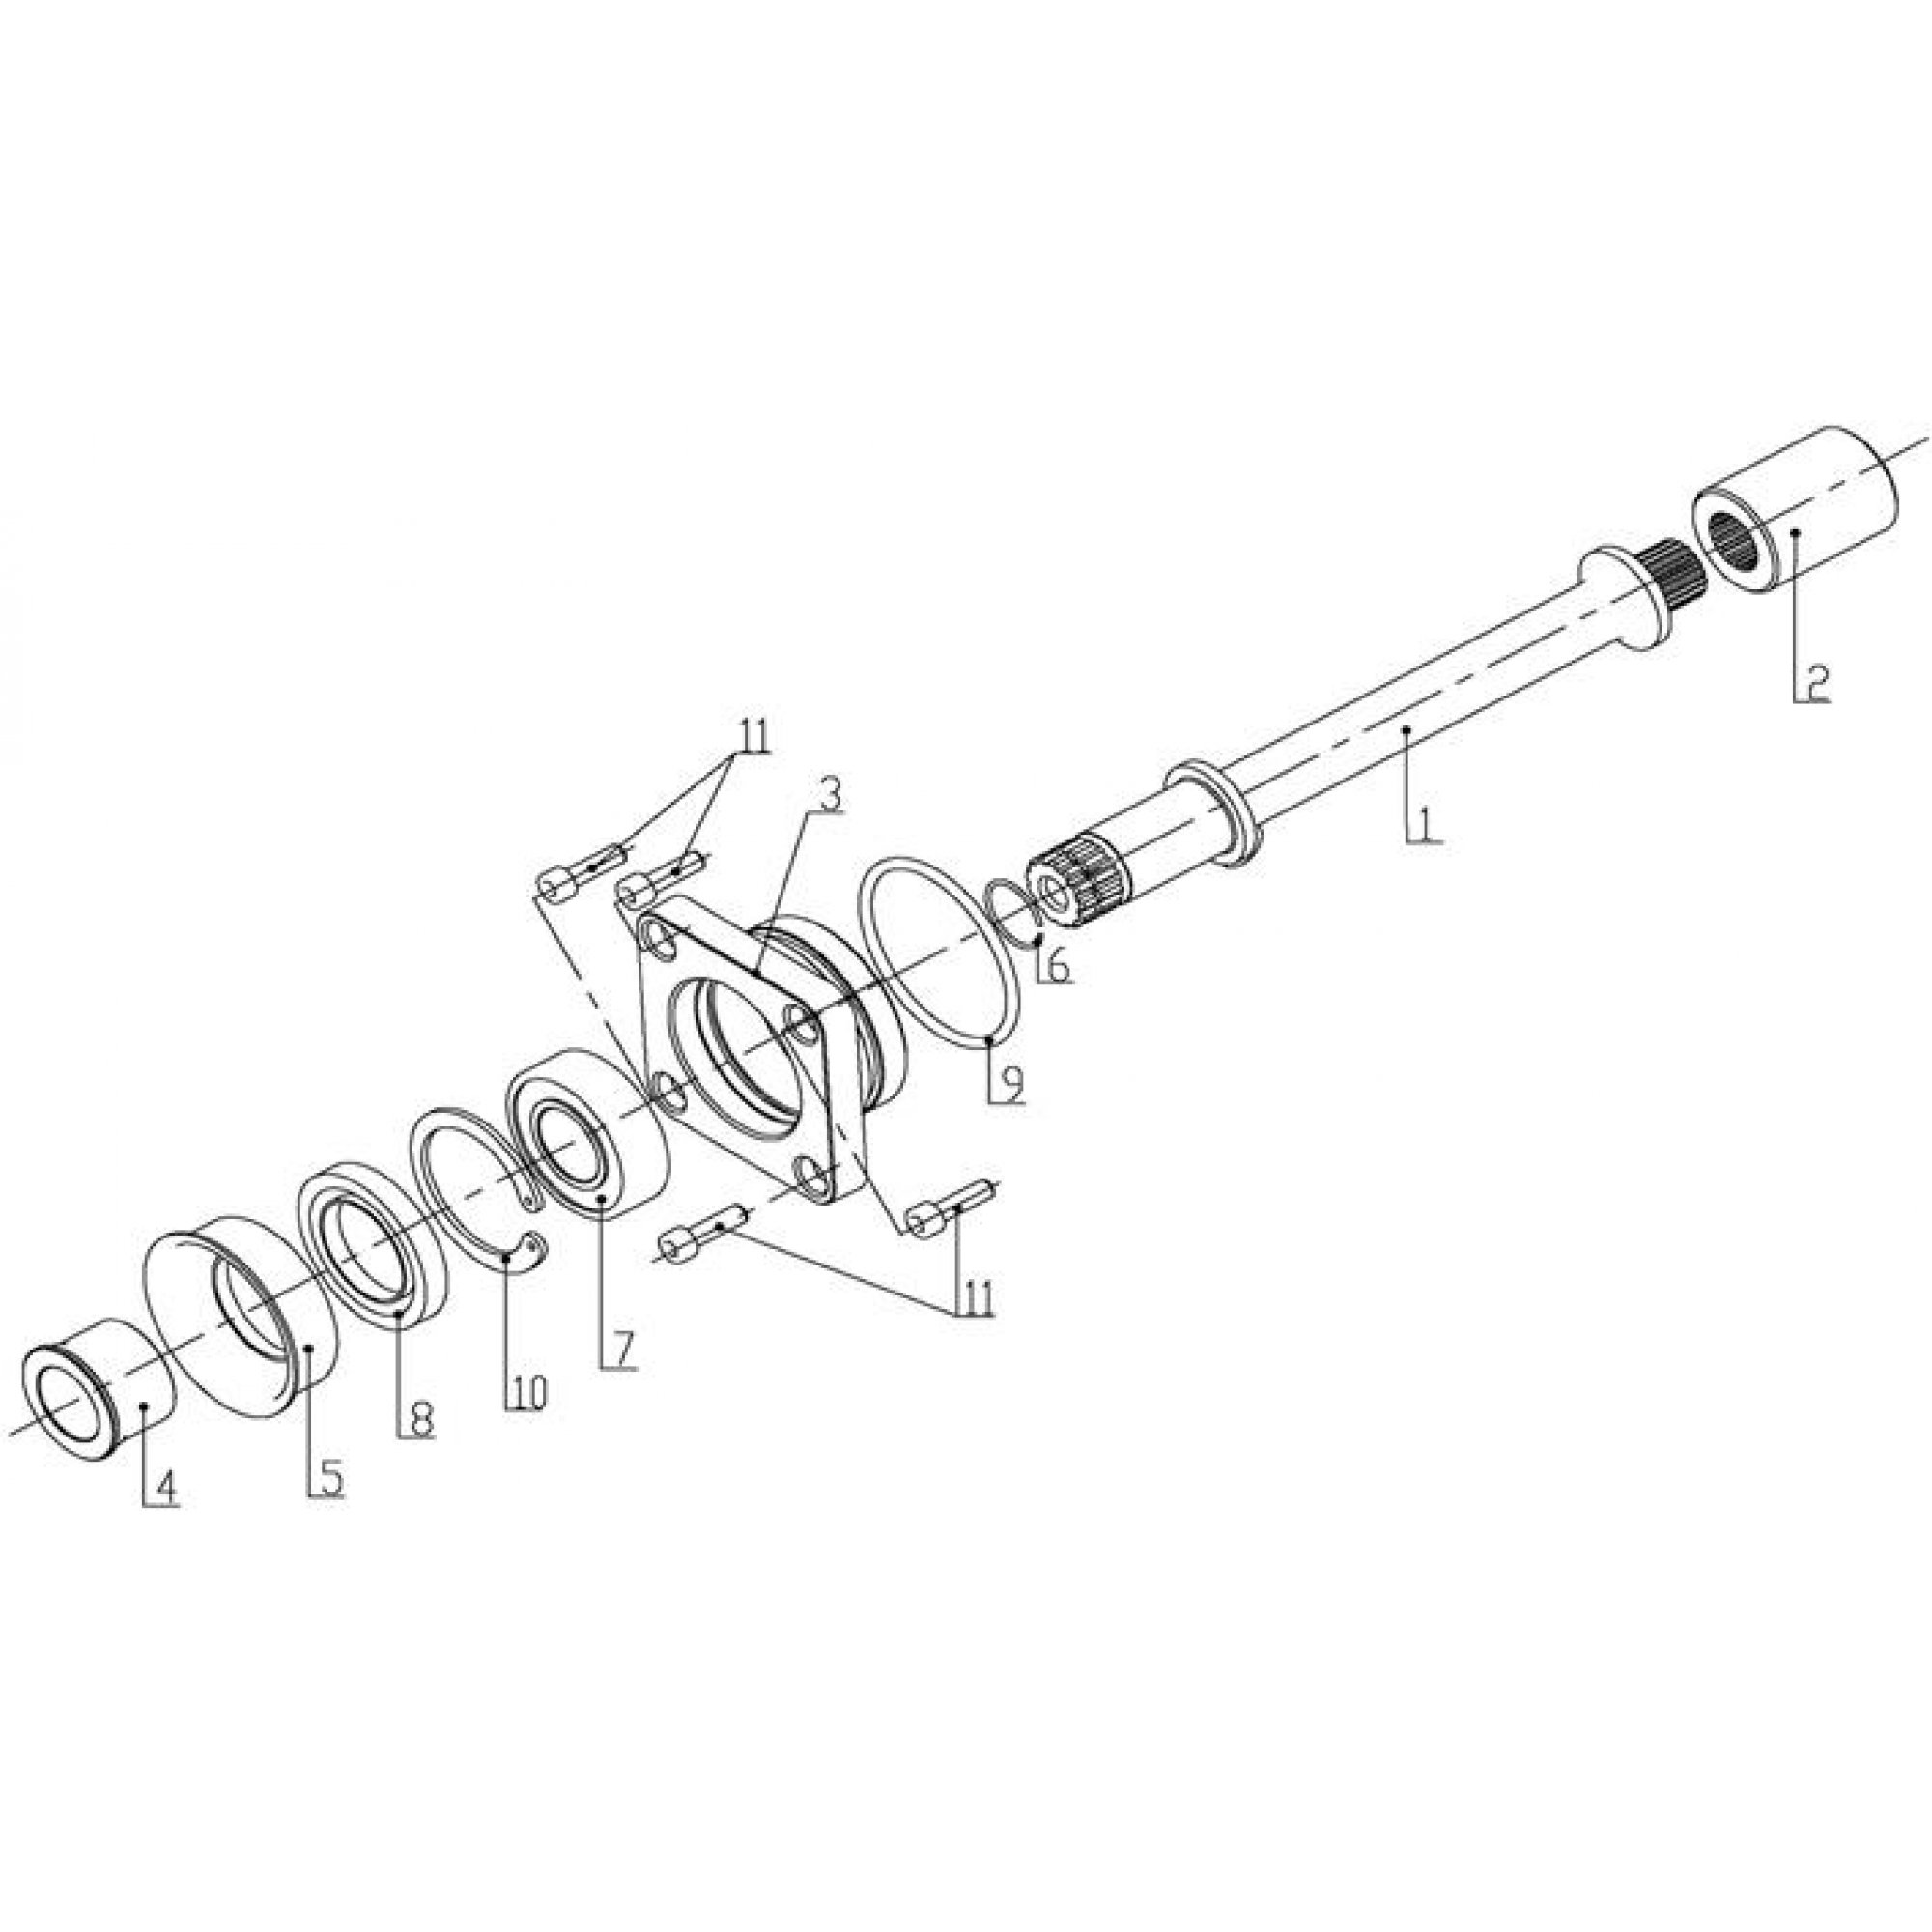 FRONT DRIVE ASSY